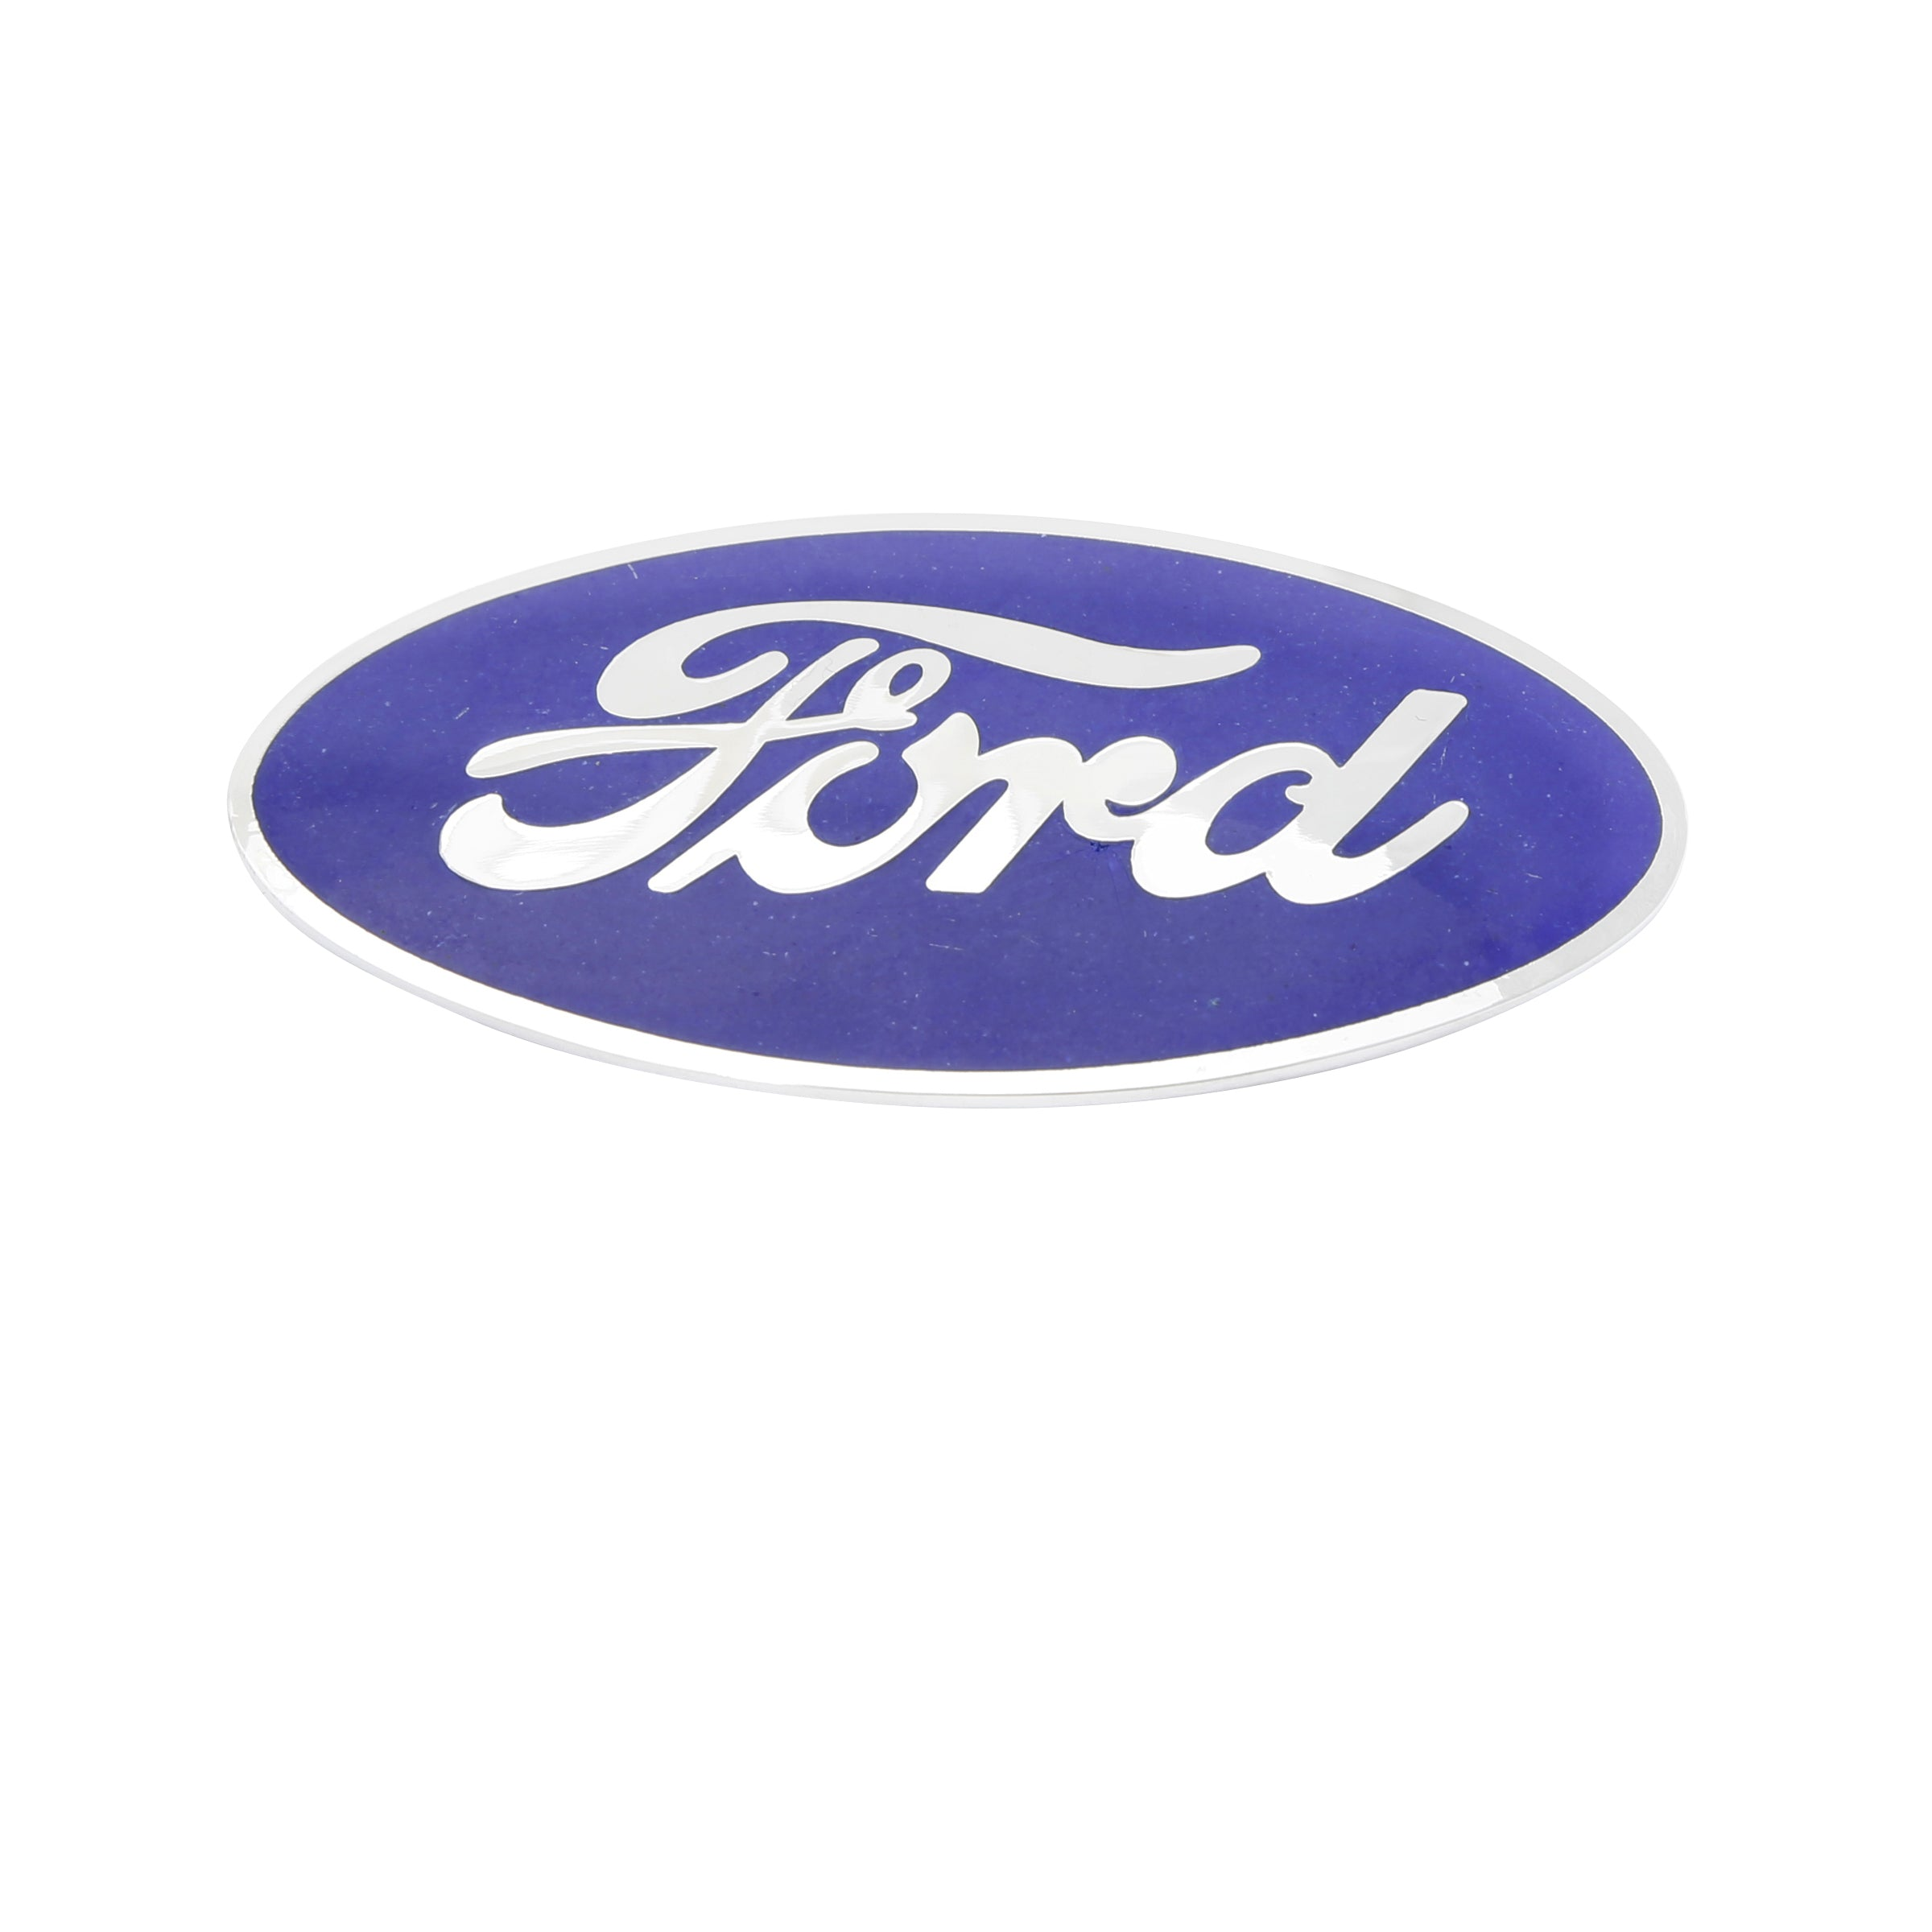 Radiator Shell Emblem • 1928-30 Model A Ford